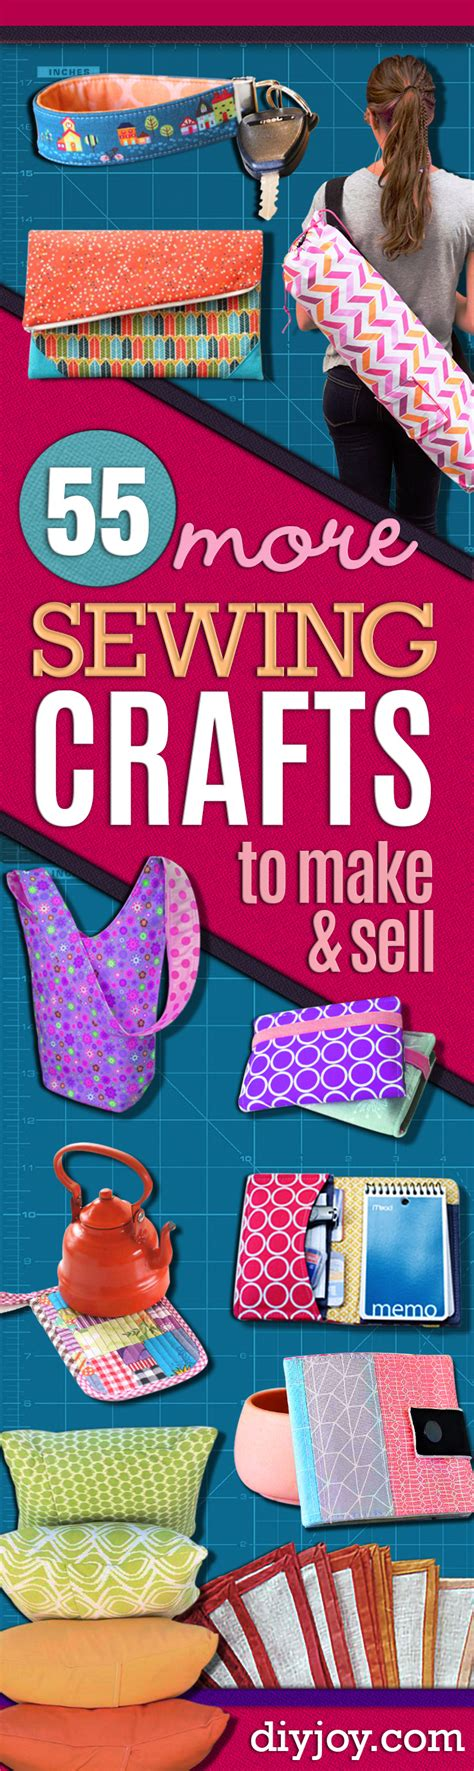 crafts to sell 55 more sewing crafts to make and sell